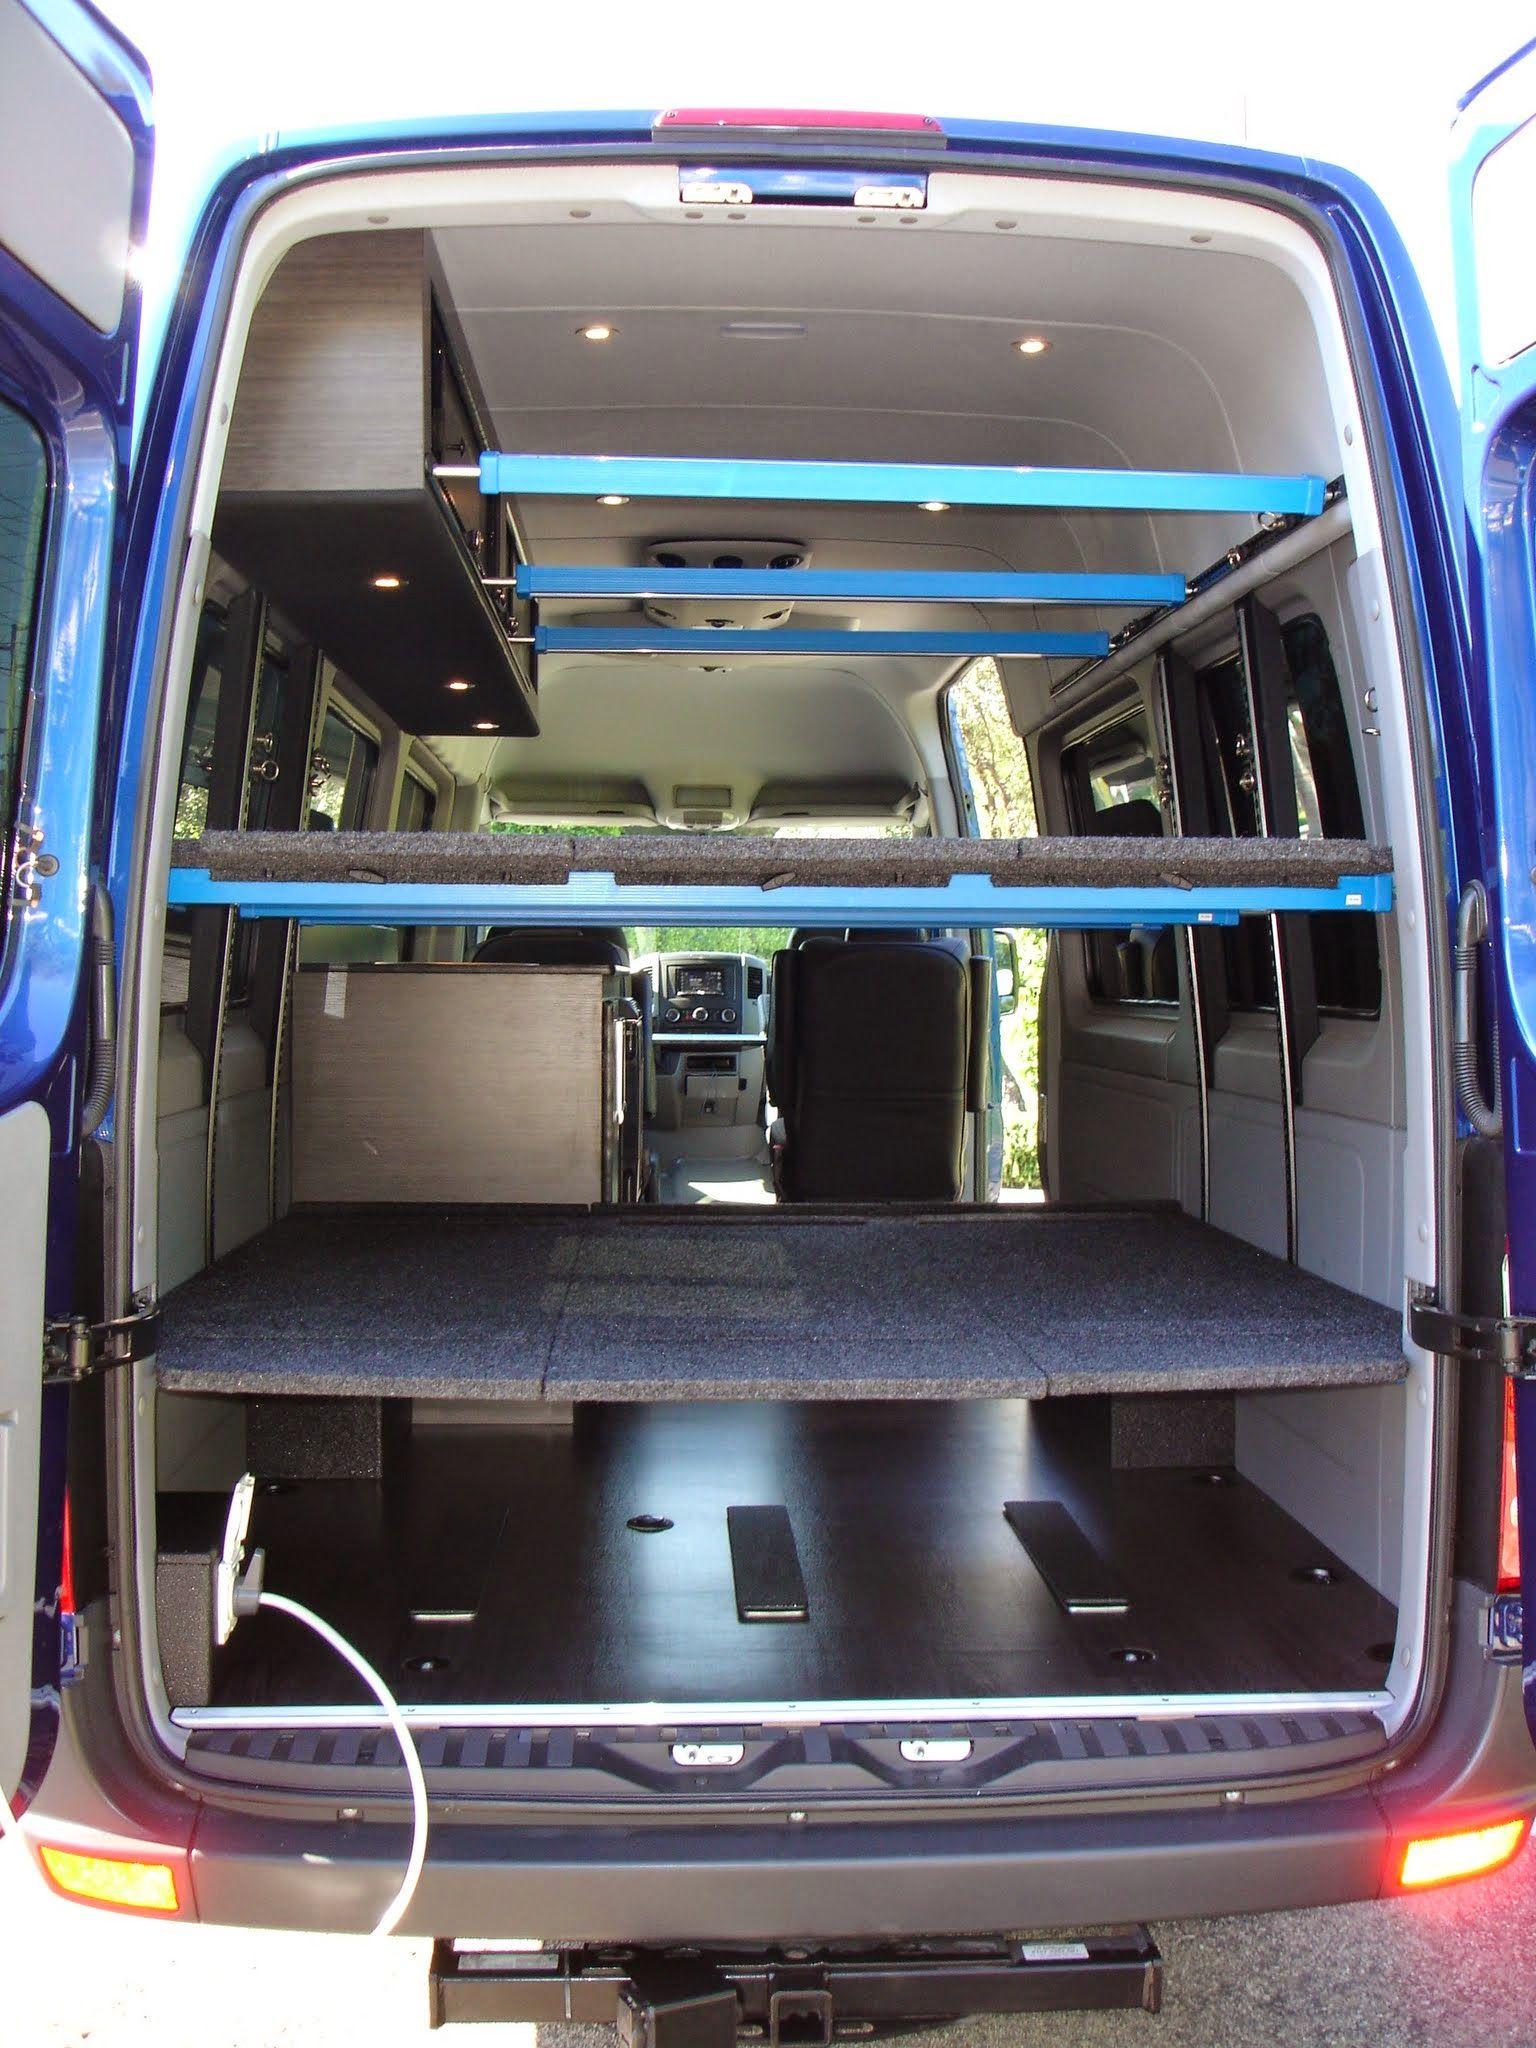 Surfboard Storage At Top Sleeping For Nice Refrigerator Sink Power The Racking And Beds Remove In Seconds We Also